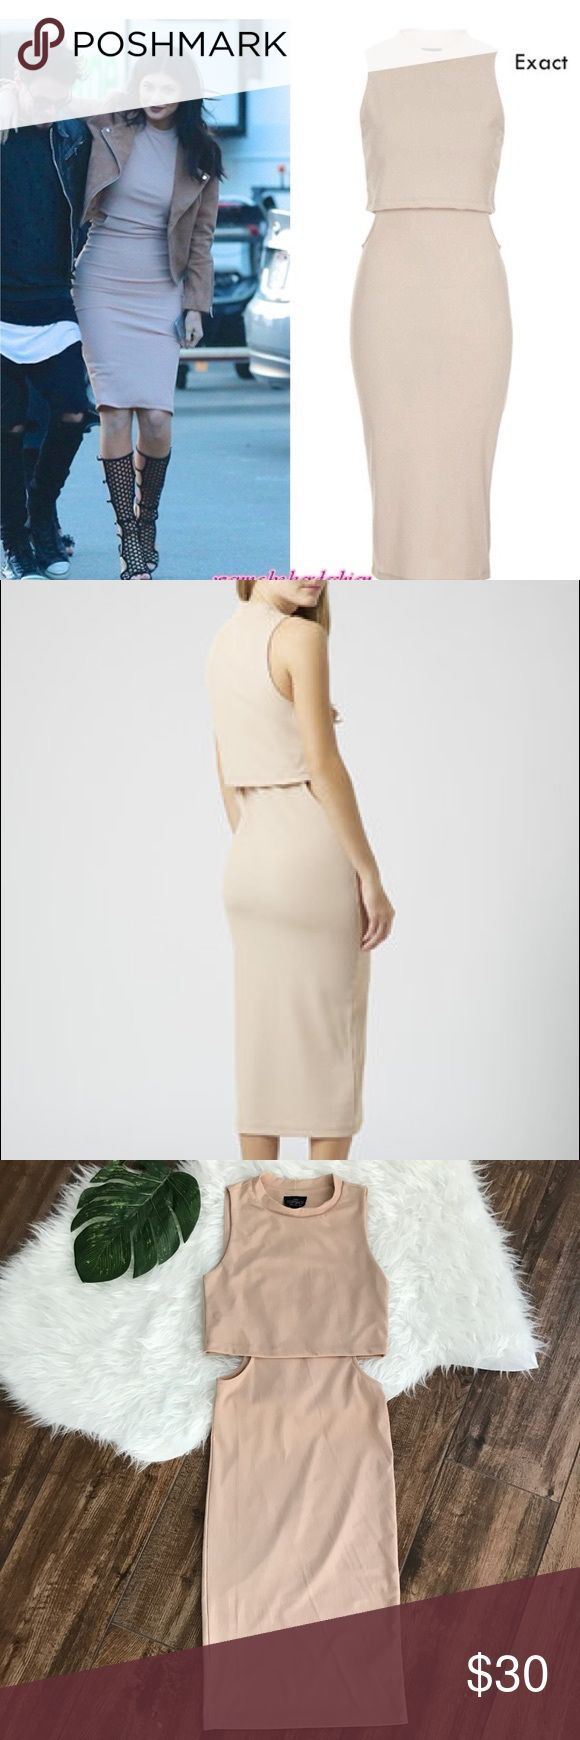 Topshop • Cutout Nude Ribbed Sleeveless Midi Dress Topshop Petite size 2P nude sleeveless Cutout midi dress. High Neckline. Looks like a crop top with skirt. As seen on Kylie Jenner. There is a small mark on the back of the dress as pictured.   No Trades!! 1115vt Topshop Dresses Midi